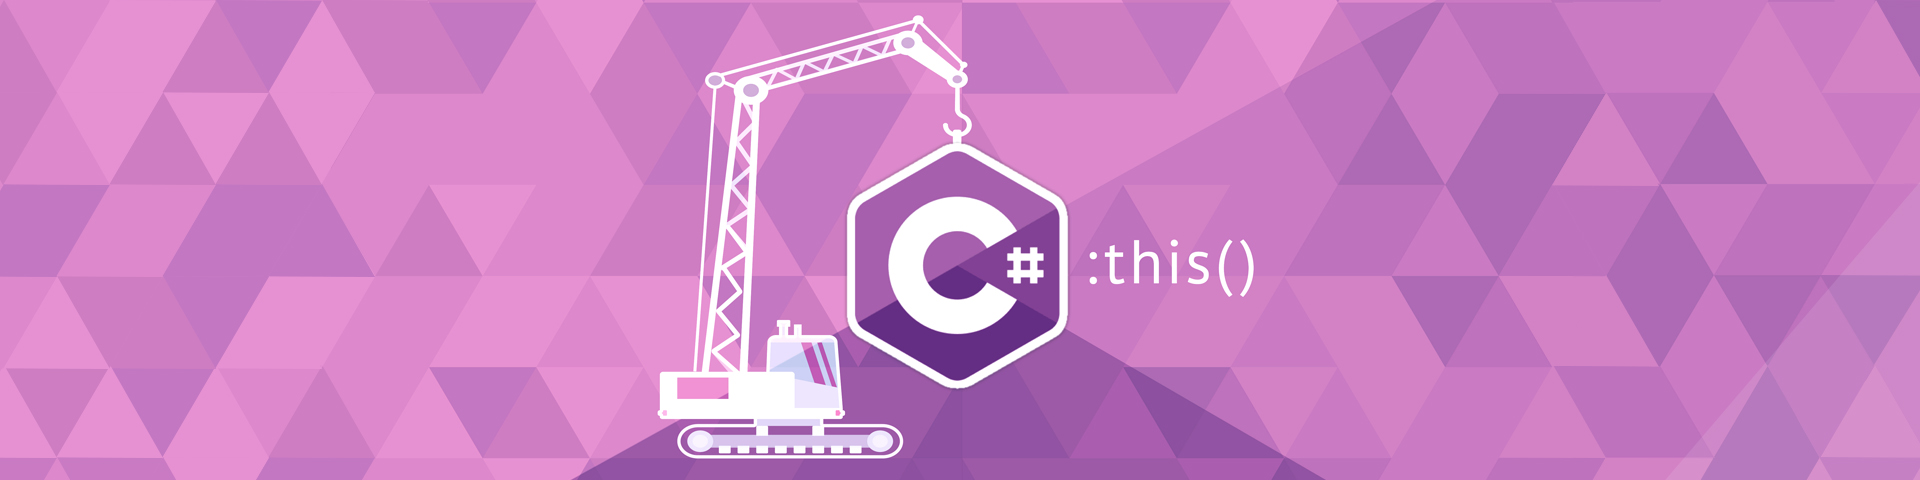 Constructor Overloading in C#